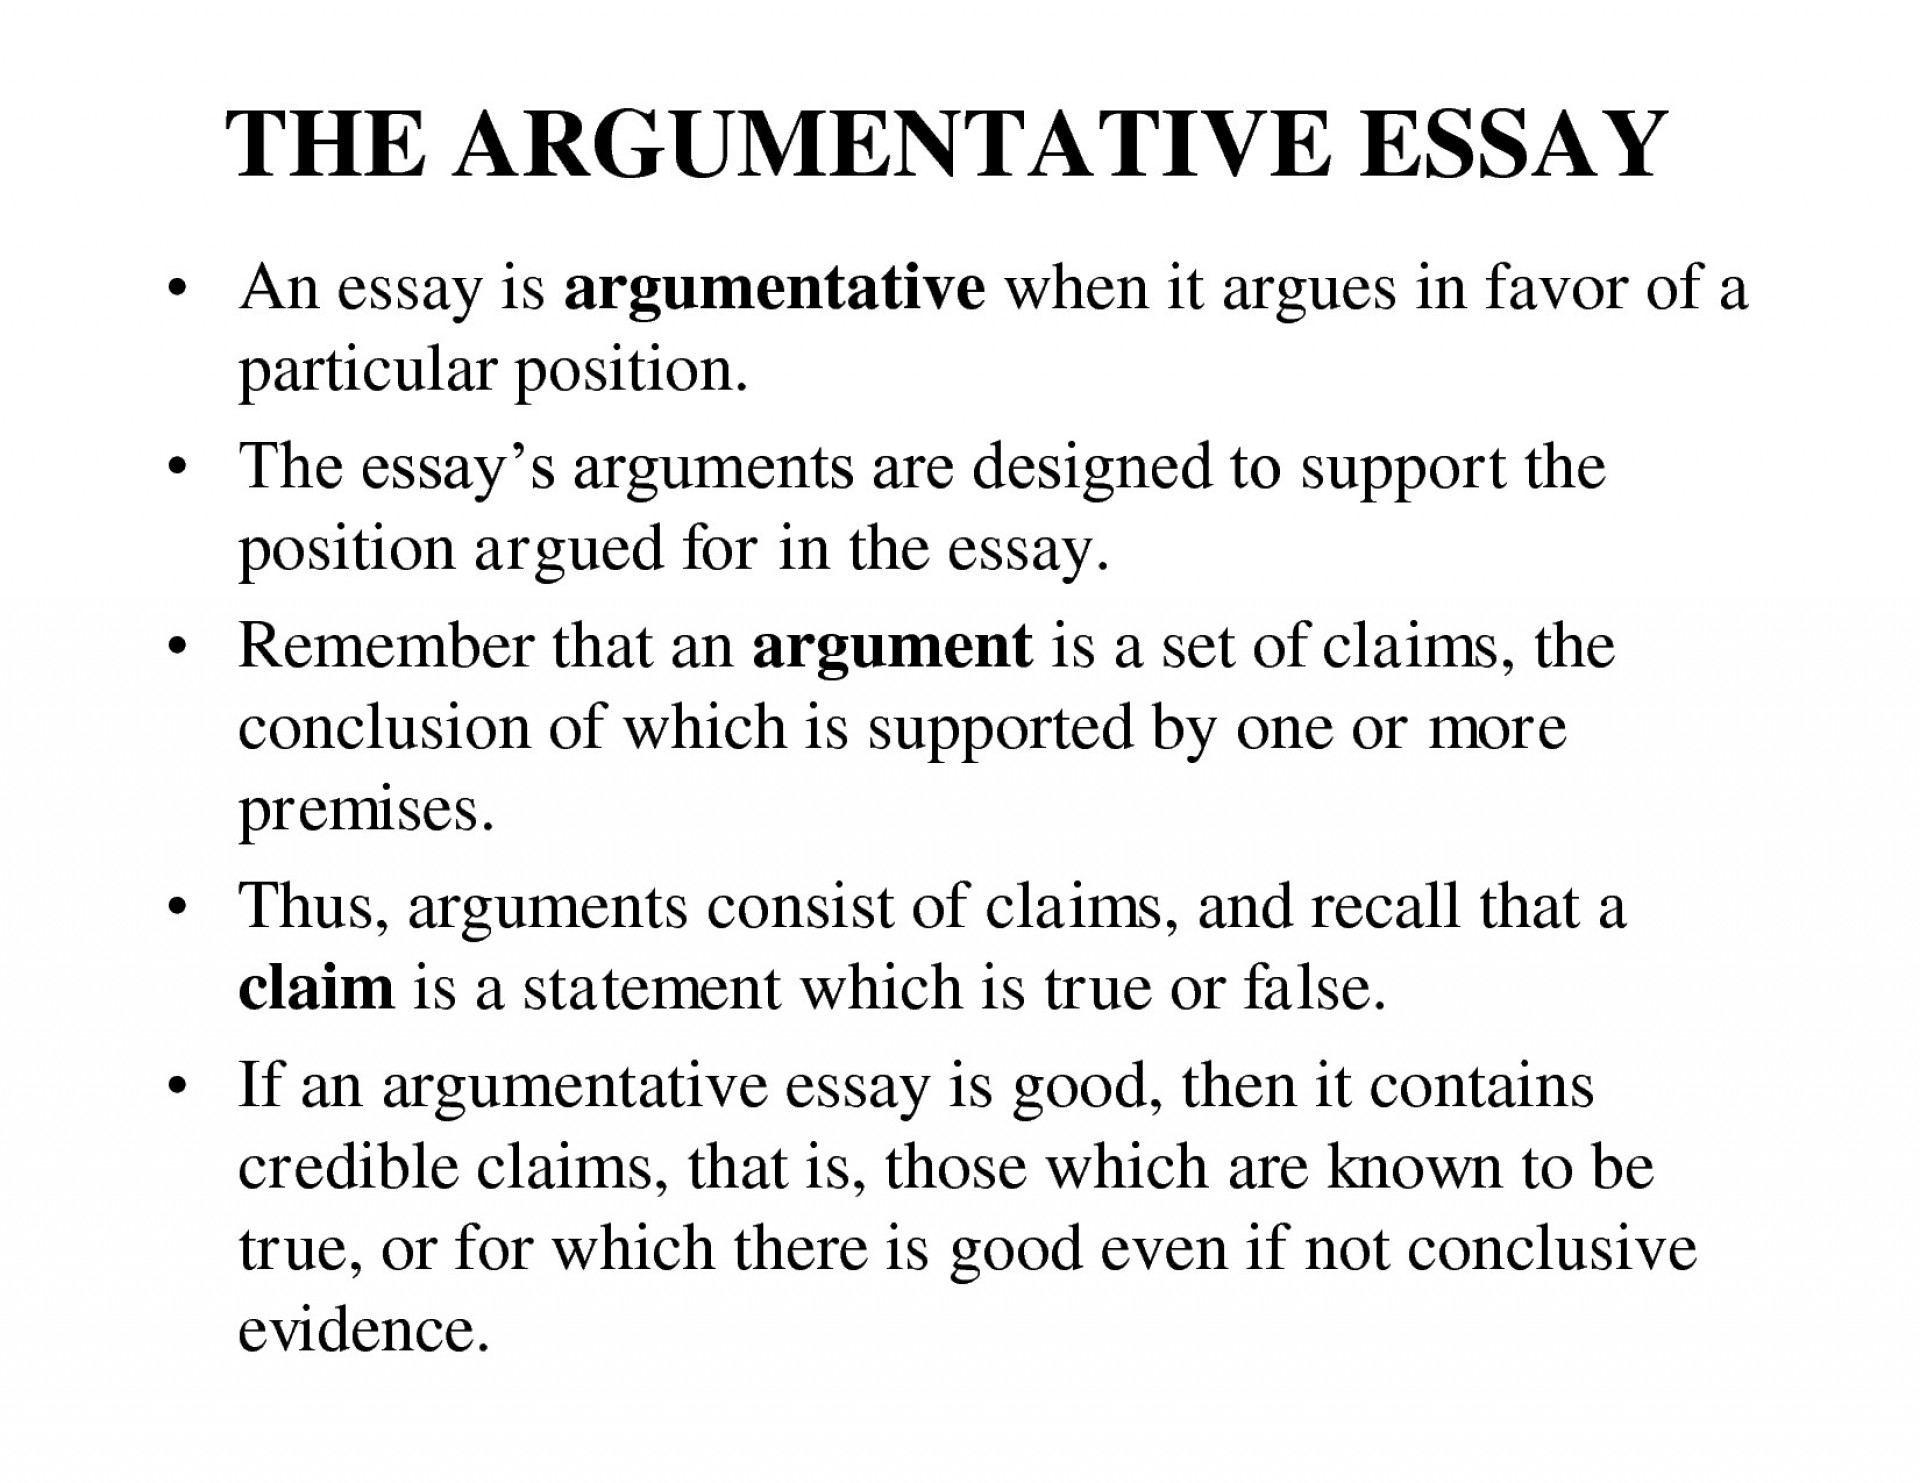 012 How To Start An Essay Conclusion Example Ways Write For Argumentative On Abo Body Paragraph With Quote Abortion Examples Introduction Thesis Unusual A History Sentence Expository 1920